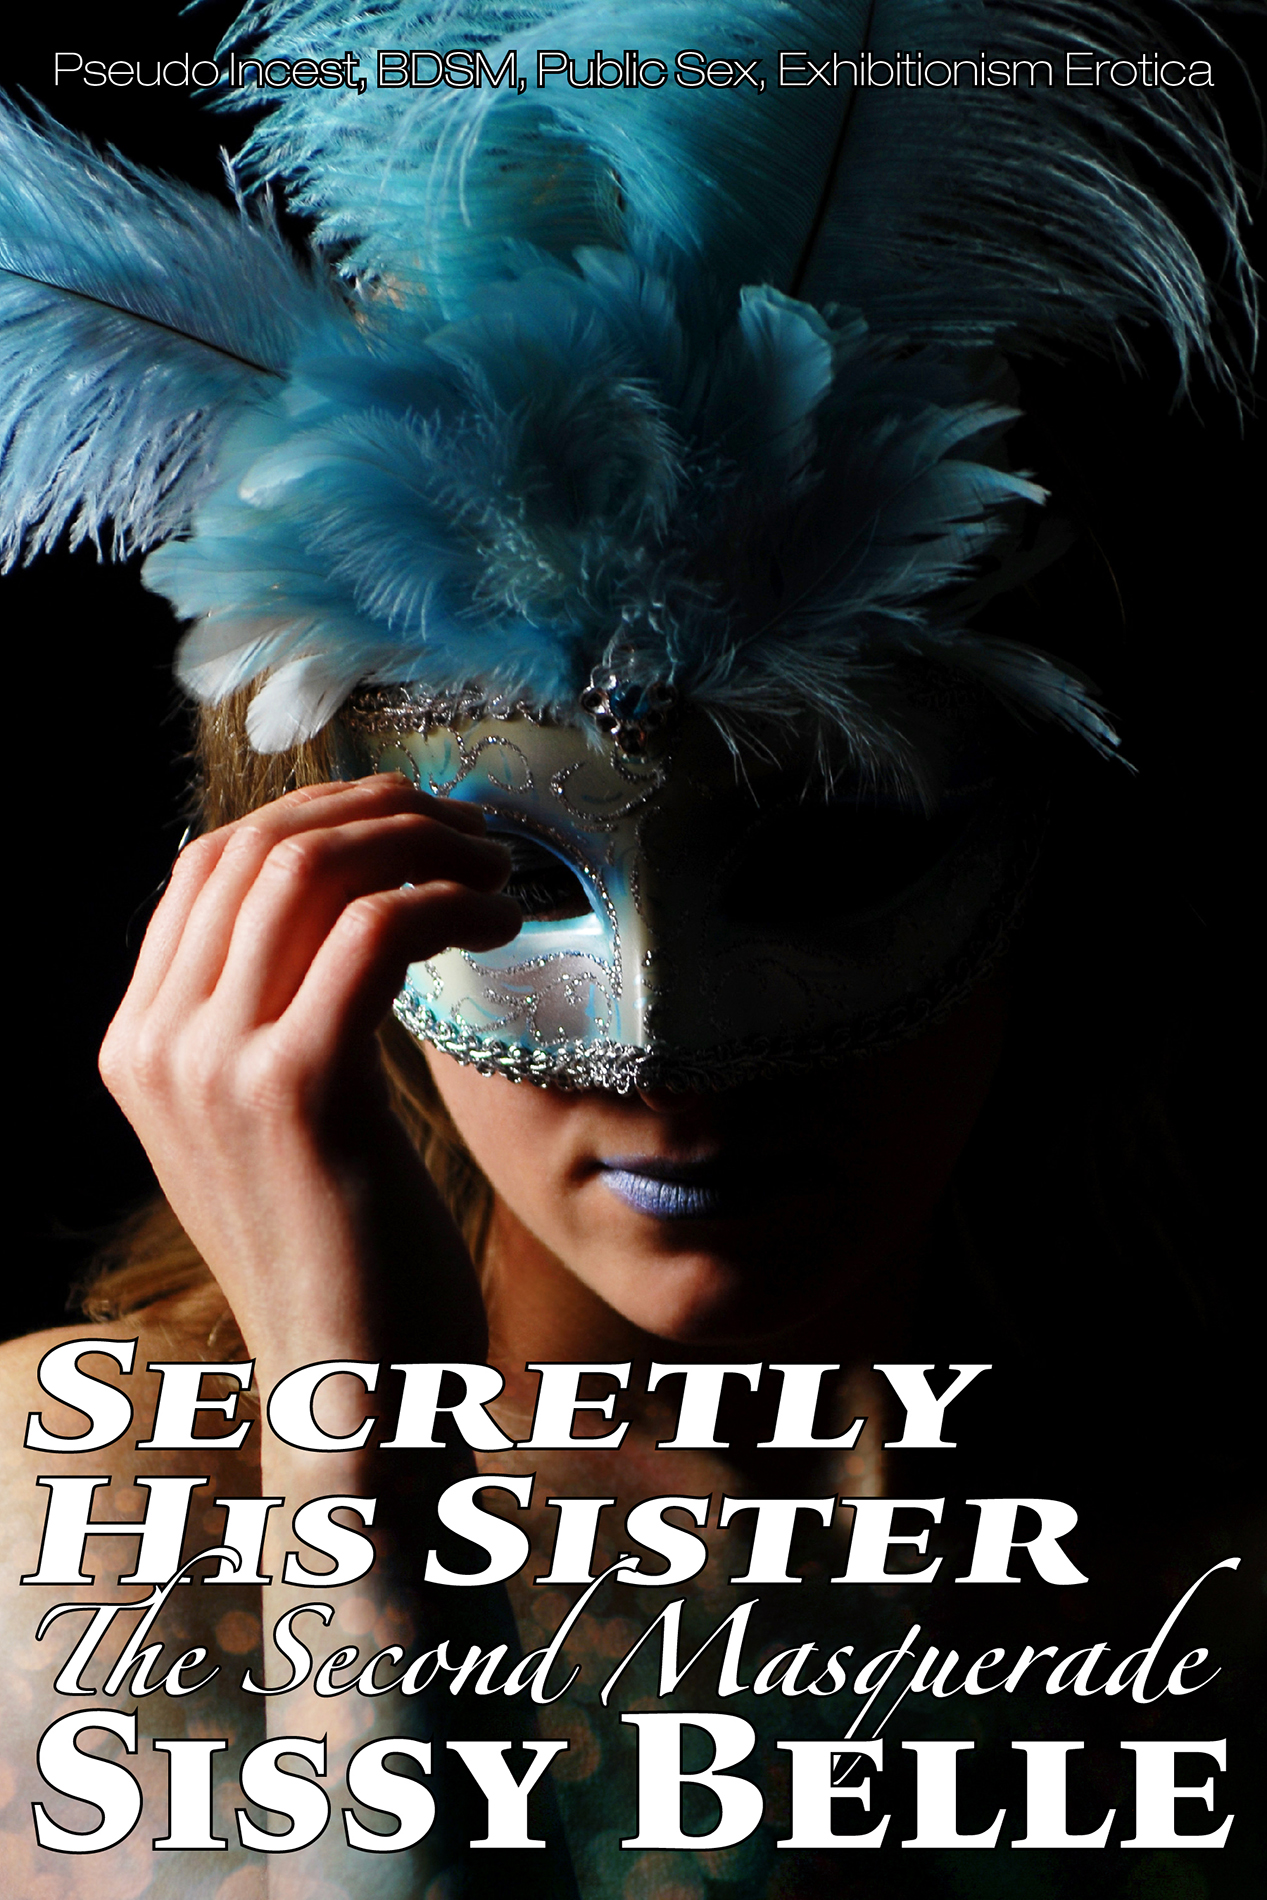 Secretly His Sister: The Second Masquerade (Pseudo Incest, BDSM, Public Sex, Exhibitionism Erotica)